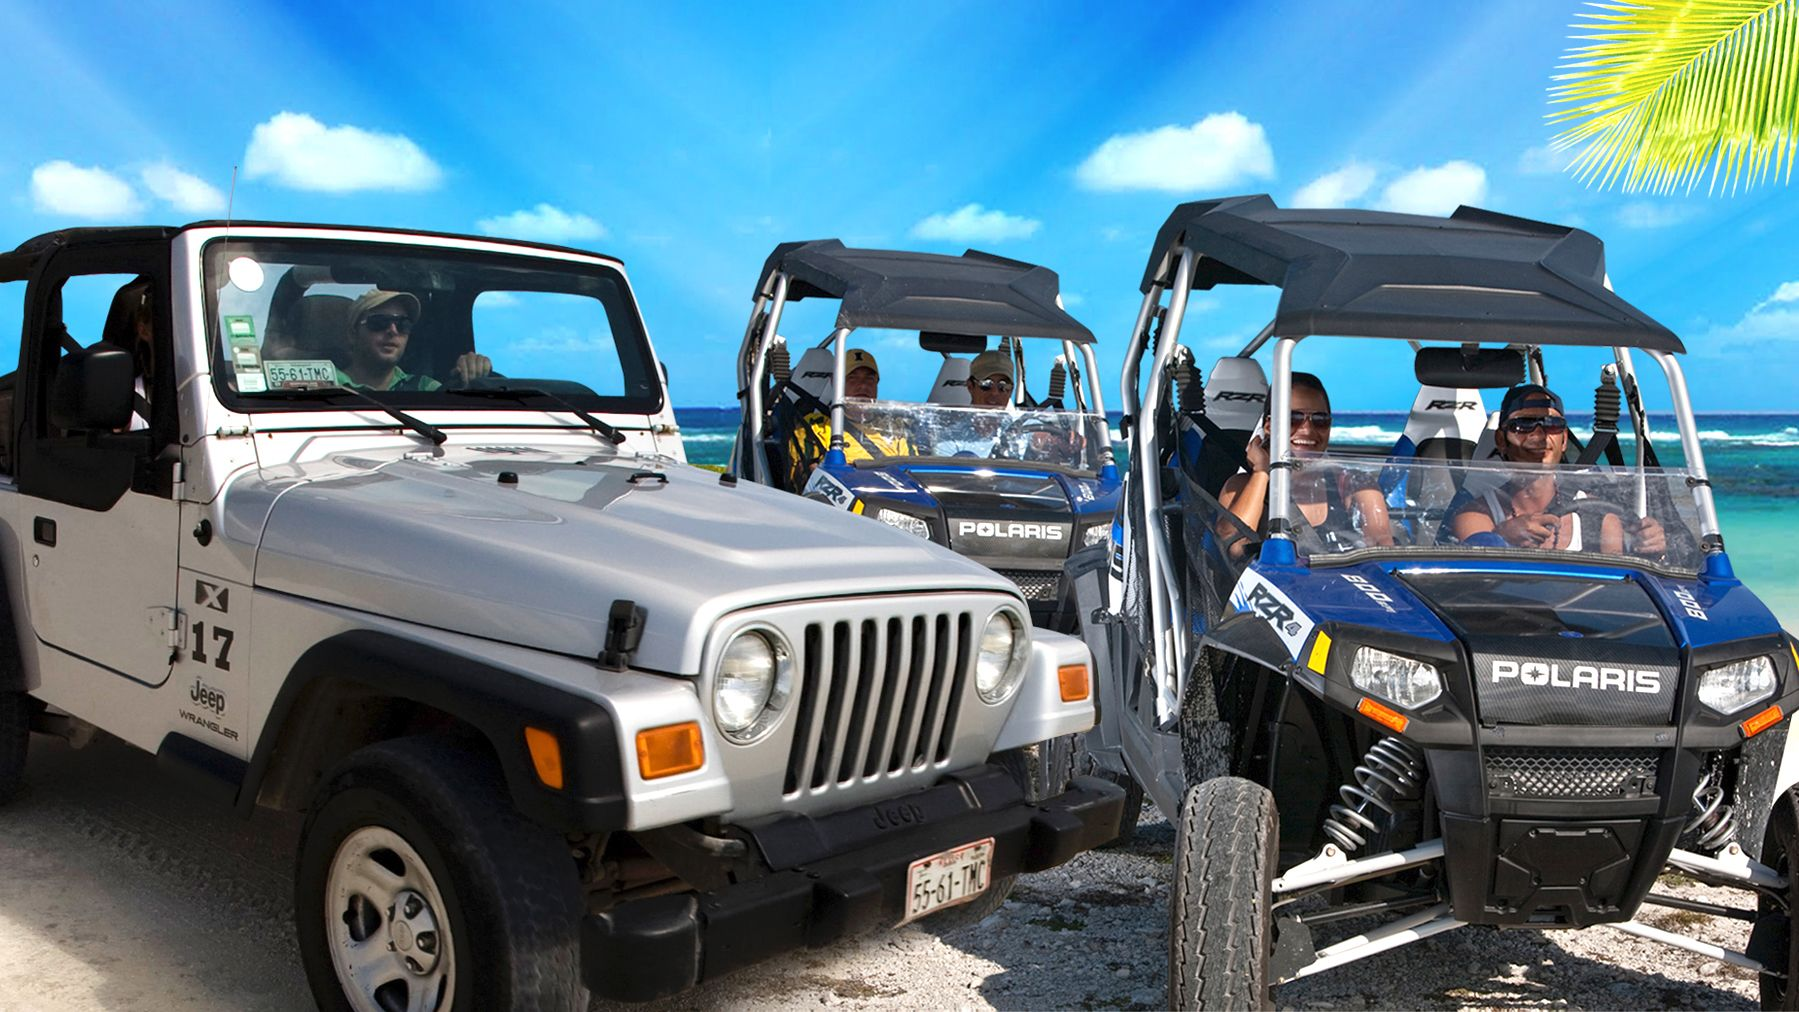 Jeep and dune buggies on the sand in Riviera Maya